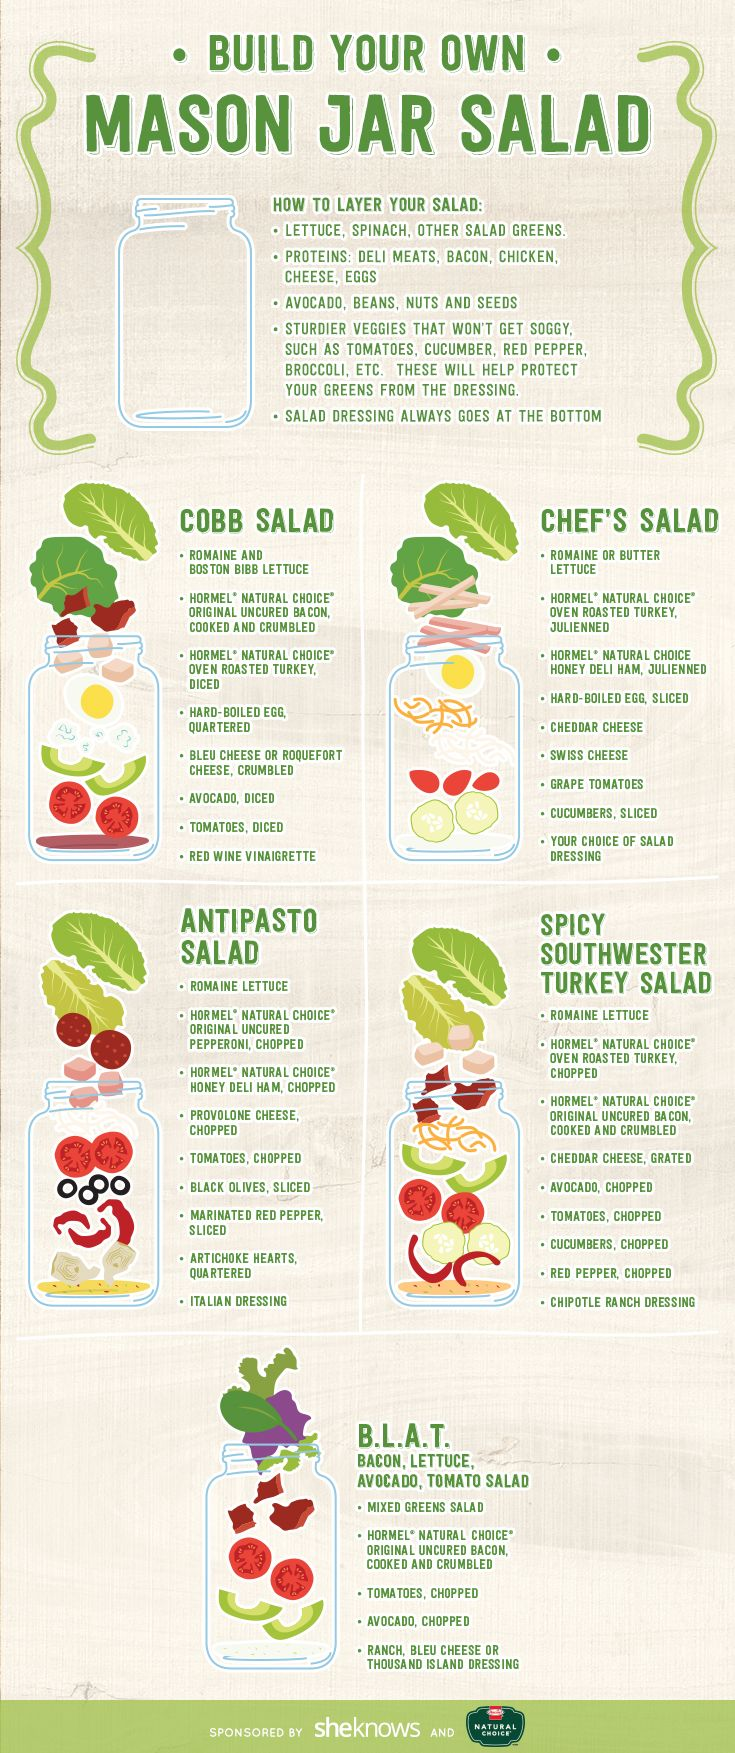 Tasty classic mason jar salad recipes to help you save money on work lunch